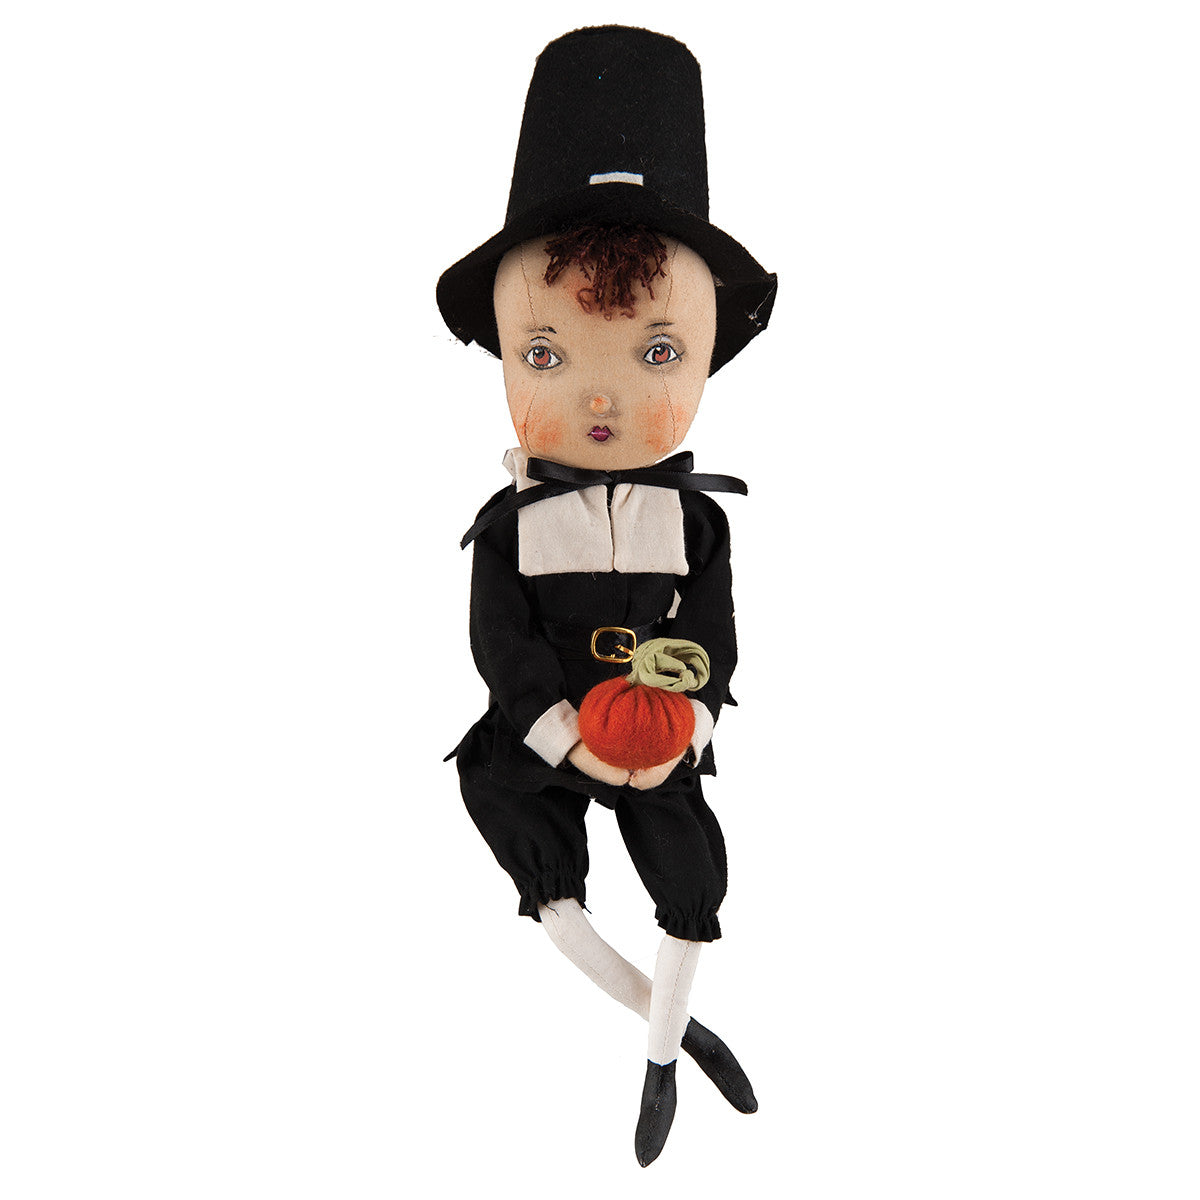 Adam Pilgrim Doll - Joe Spencer Thanksgiving Dolls